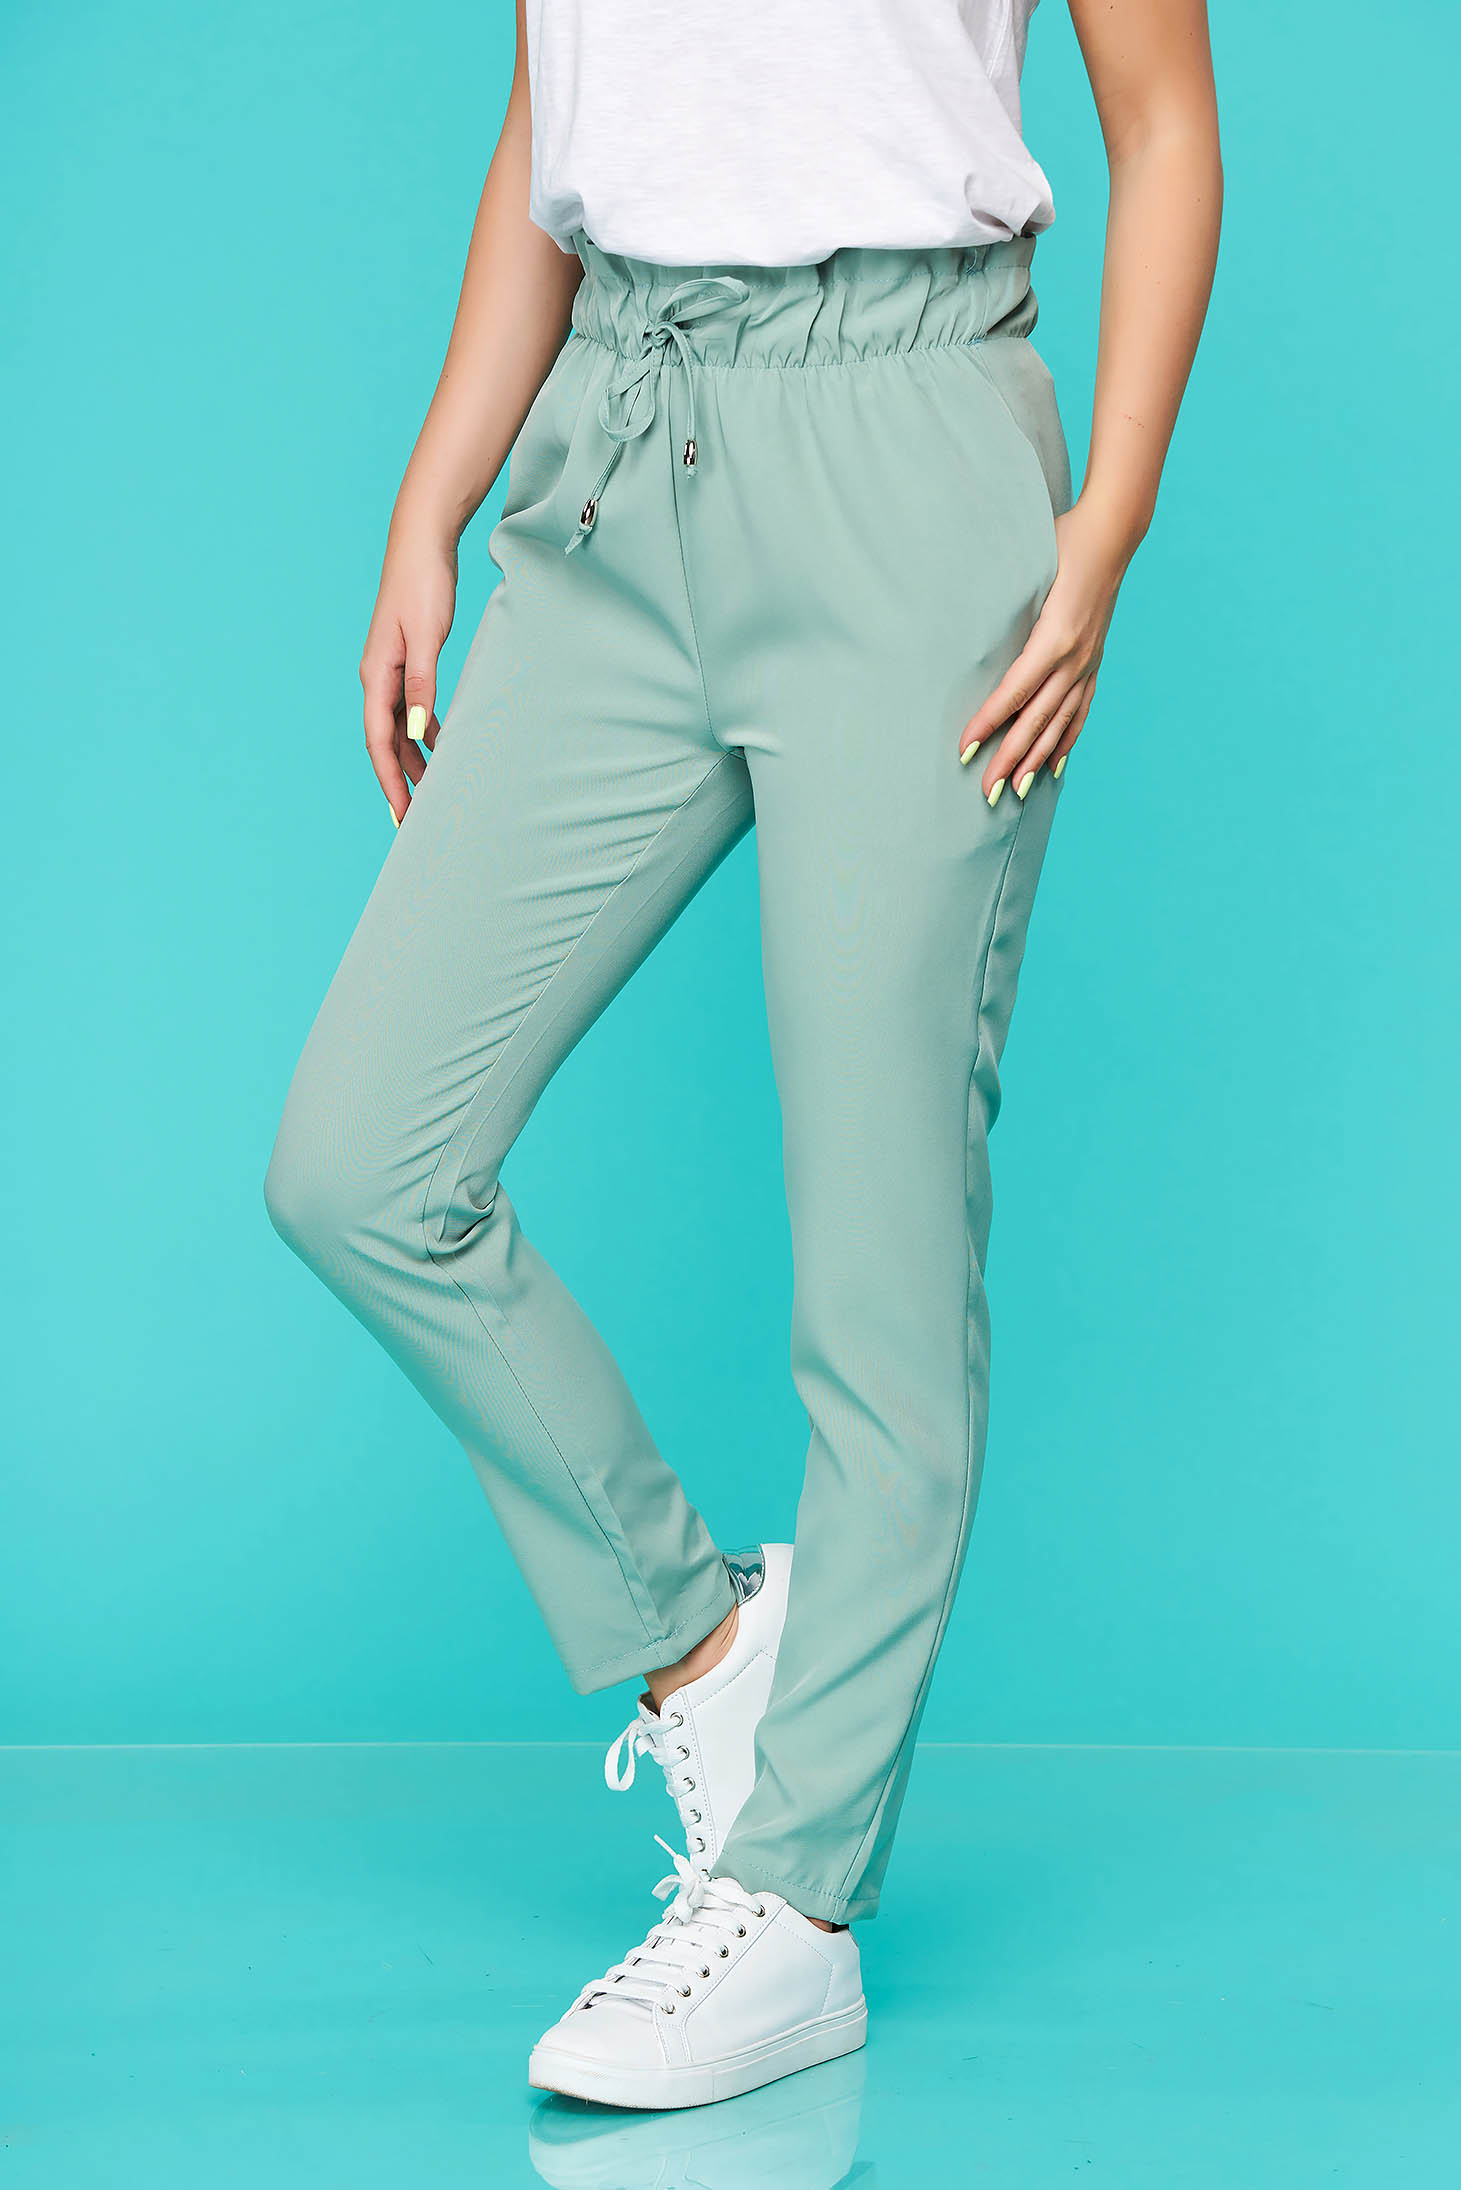 Lightgreen trousers casual thin fabric with elastic waist with pockets